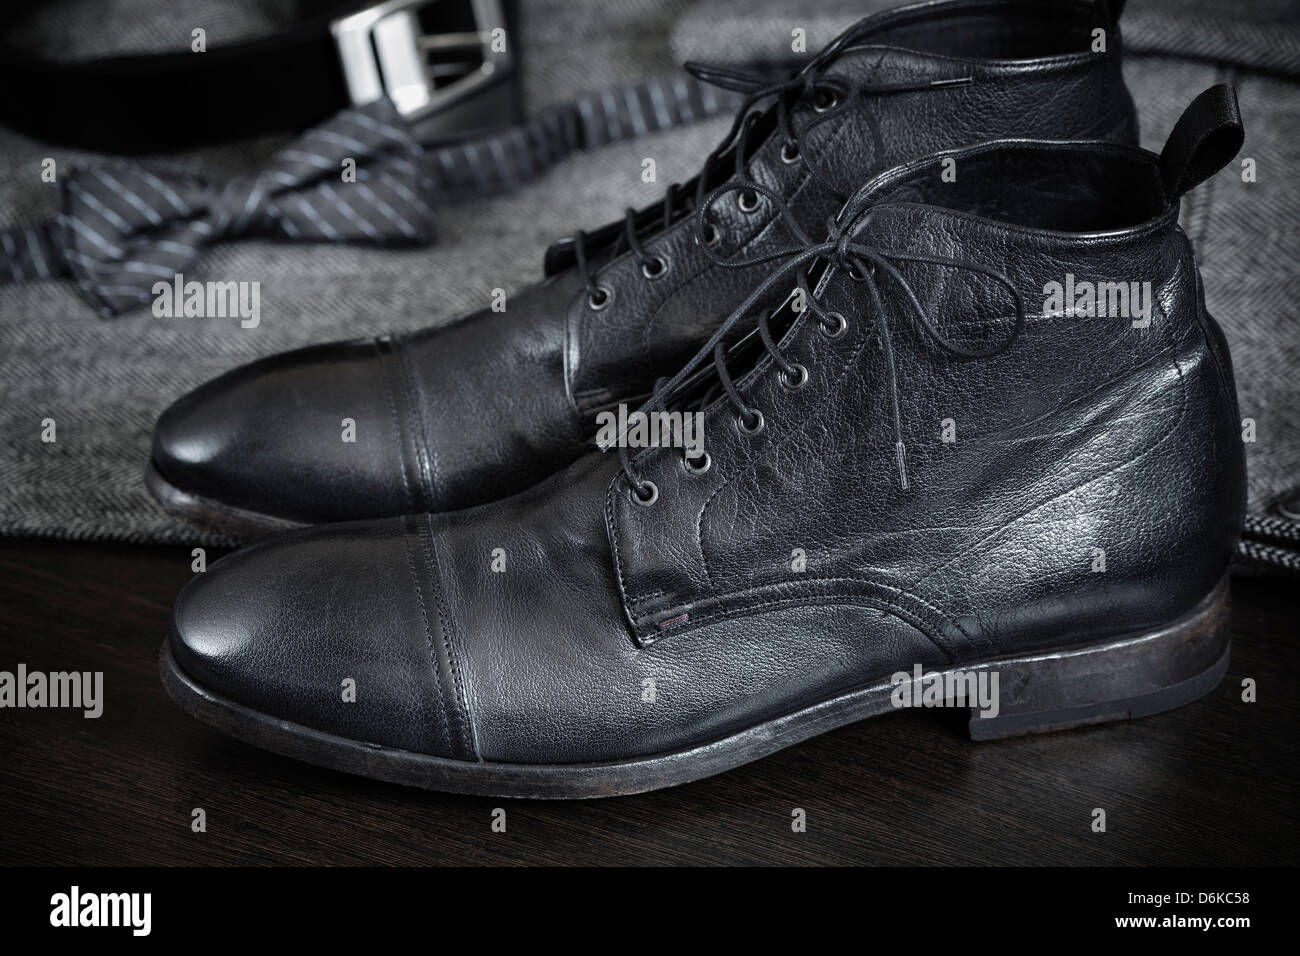 25159d890f9a premium leather hand-made shoes